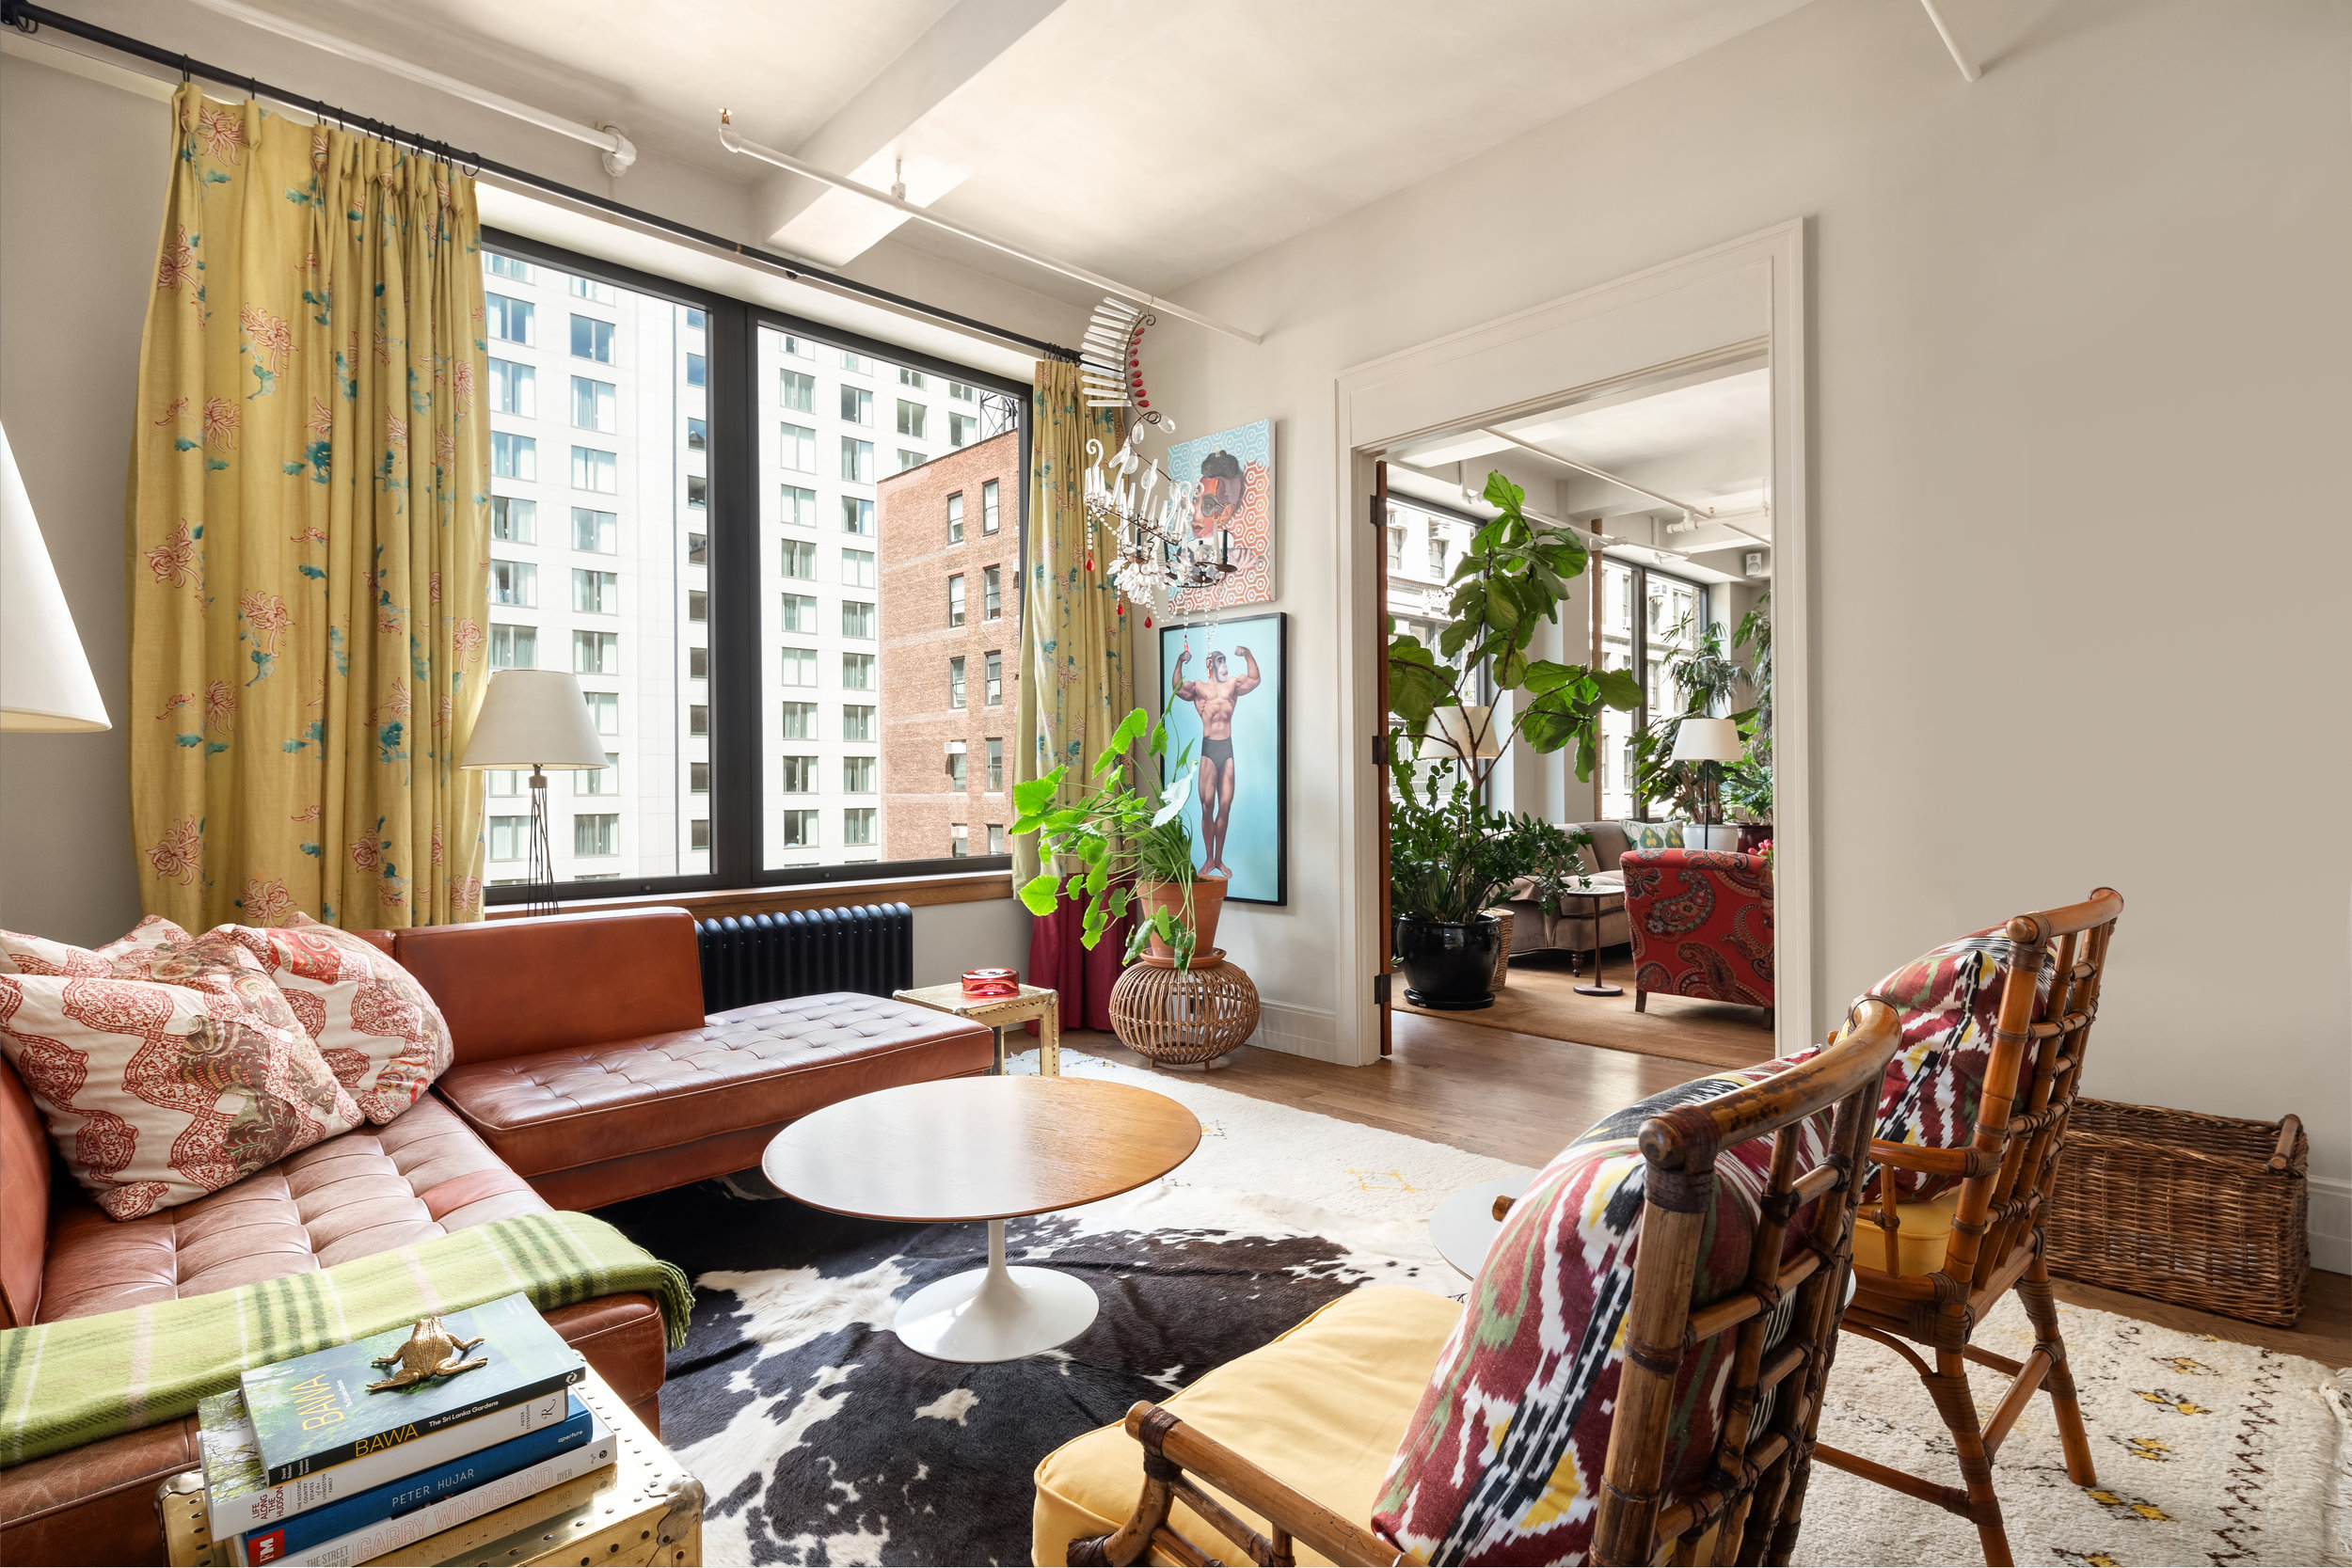 142West26thStreet9-ChelseaNewYork_Holly_Parker_DouglasElliman_Photography_79380425_high_res.jpg